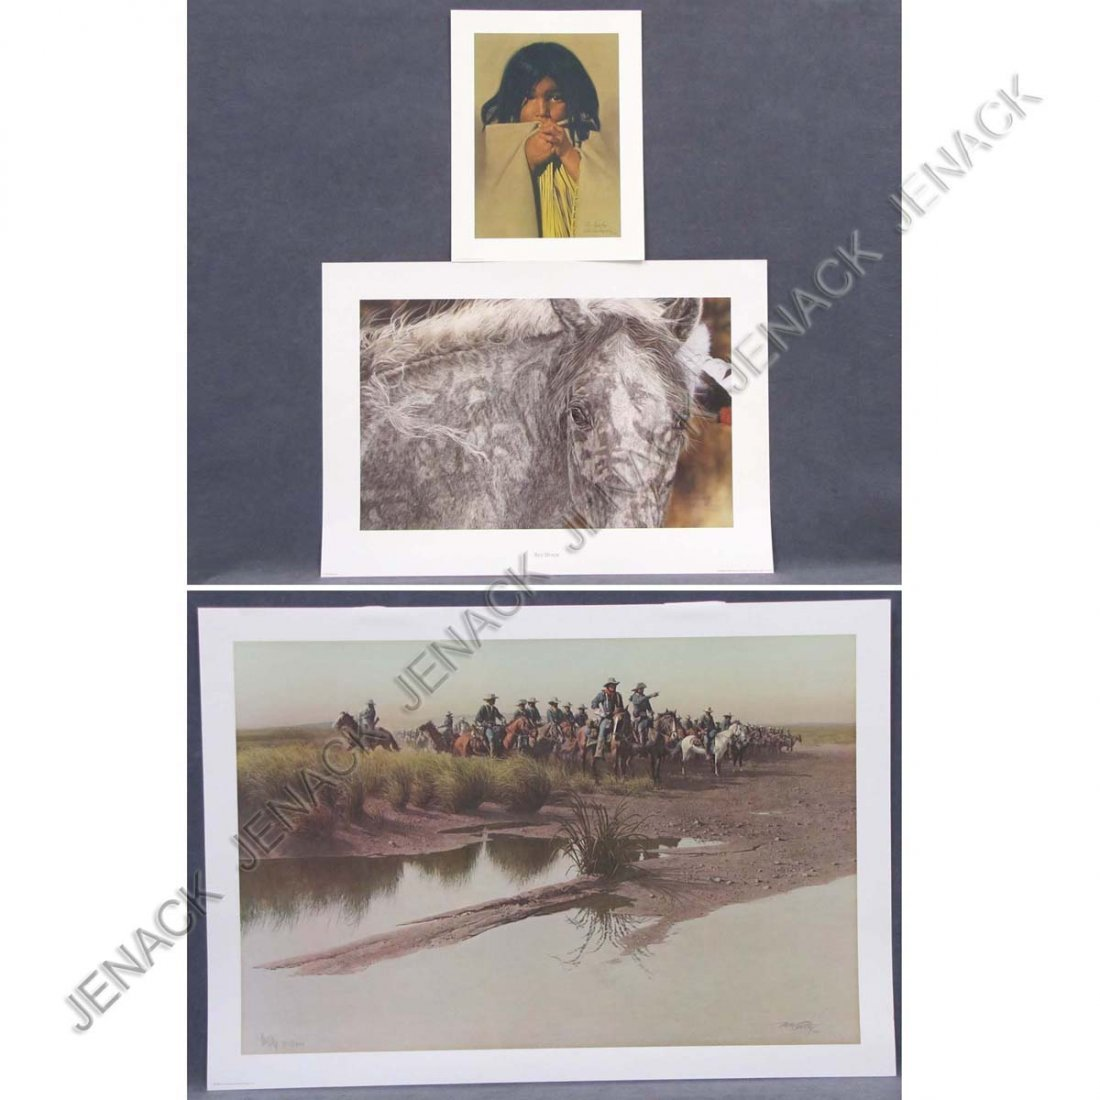 7: LOT (3) OFFSET LITHOGRAPHS INCLUDING JUDY LARSON